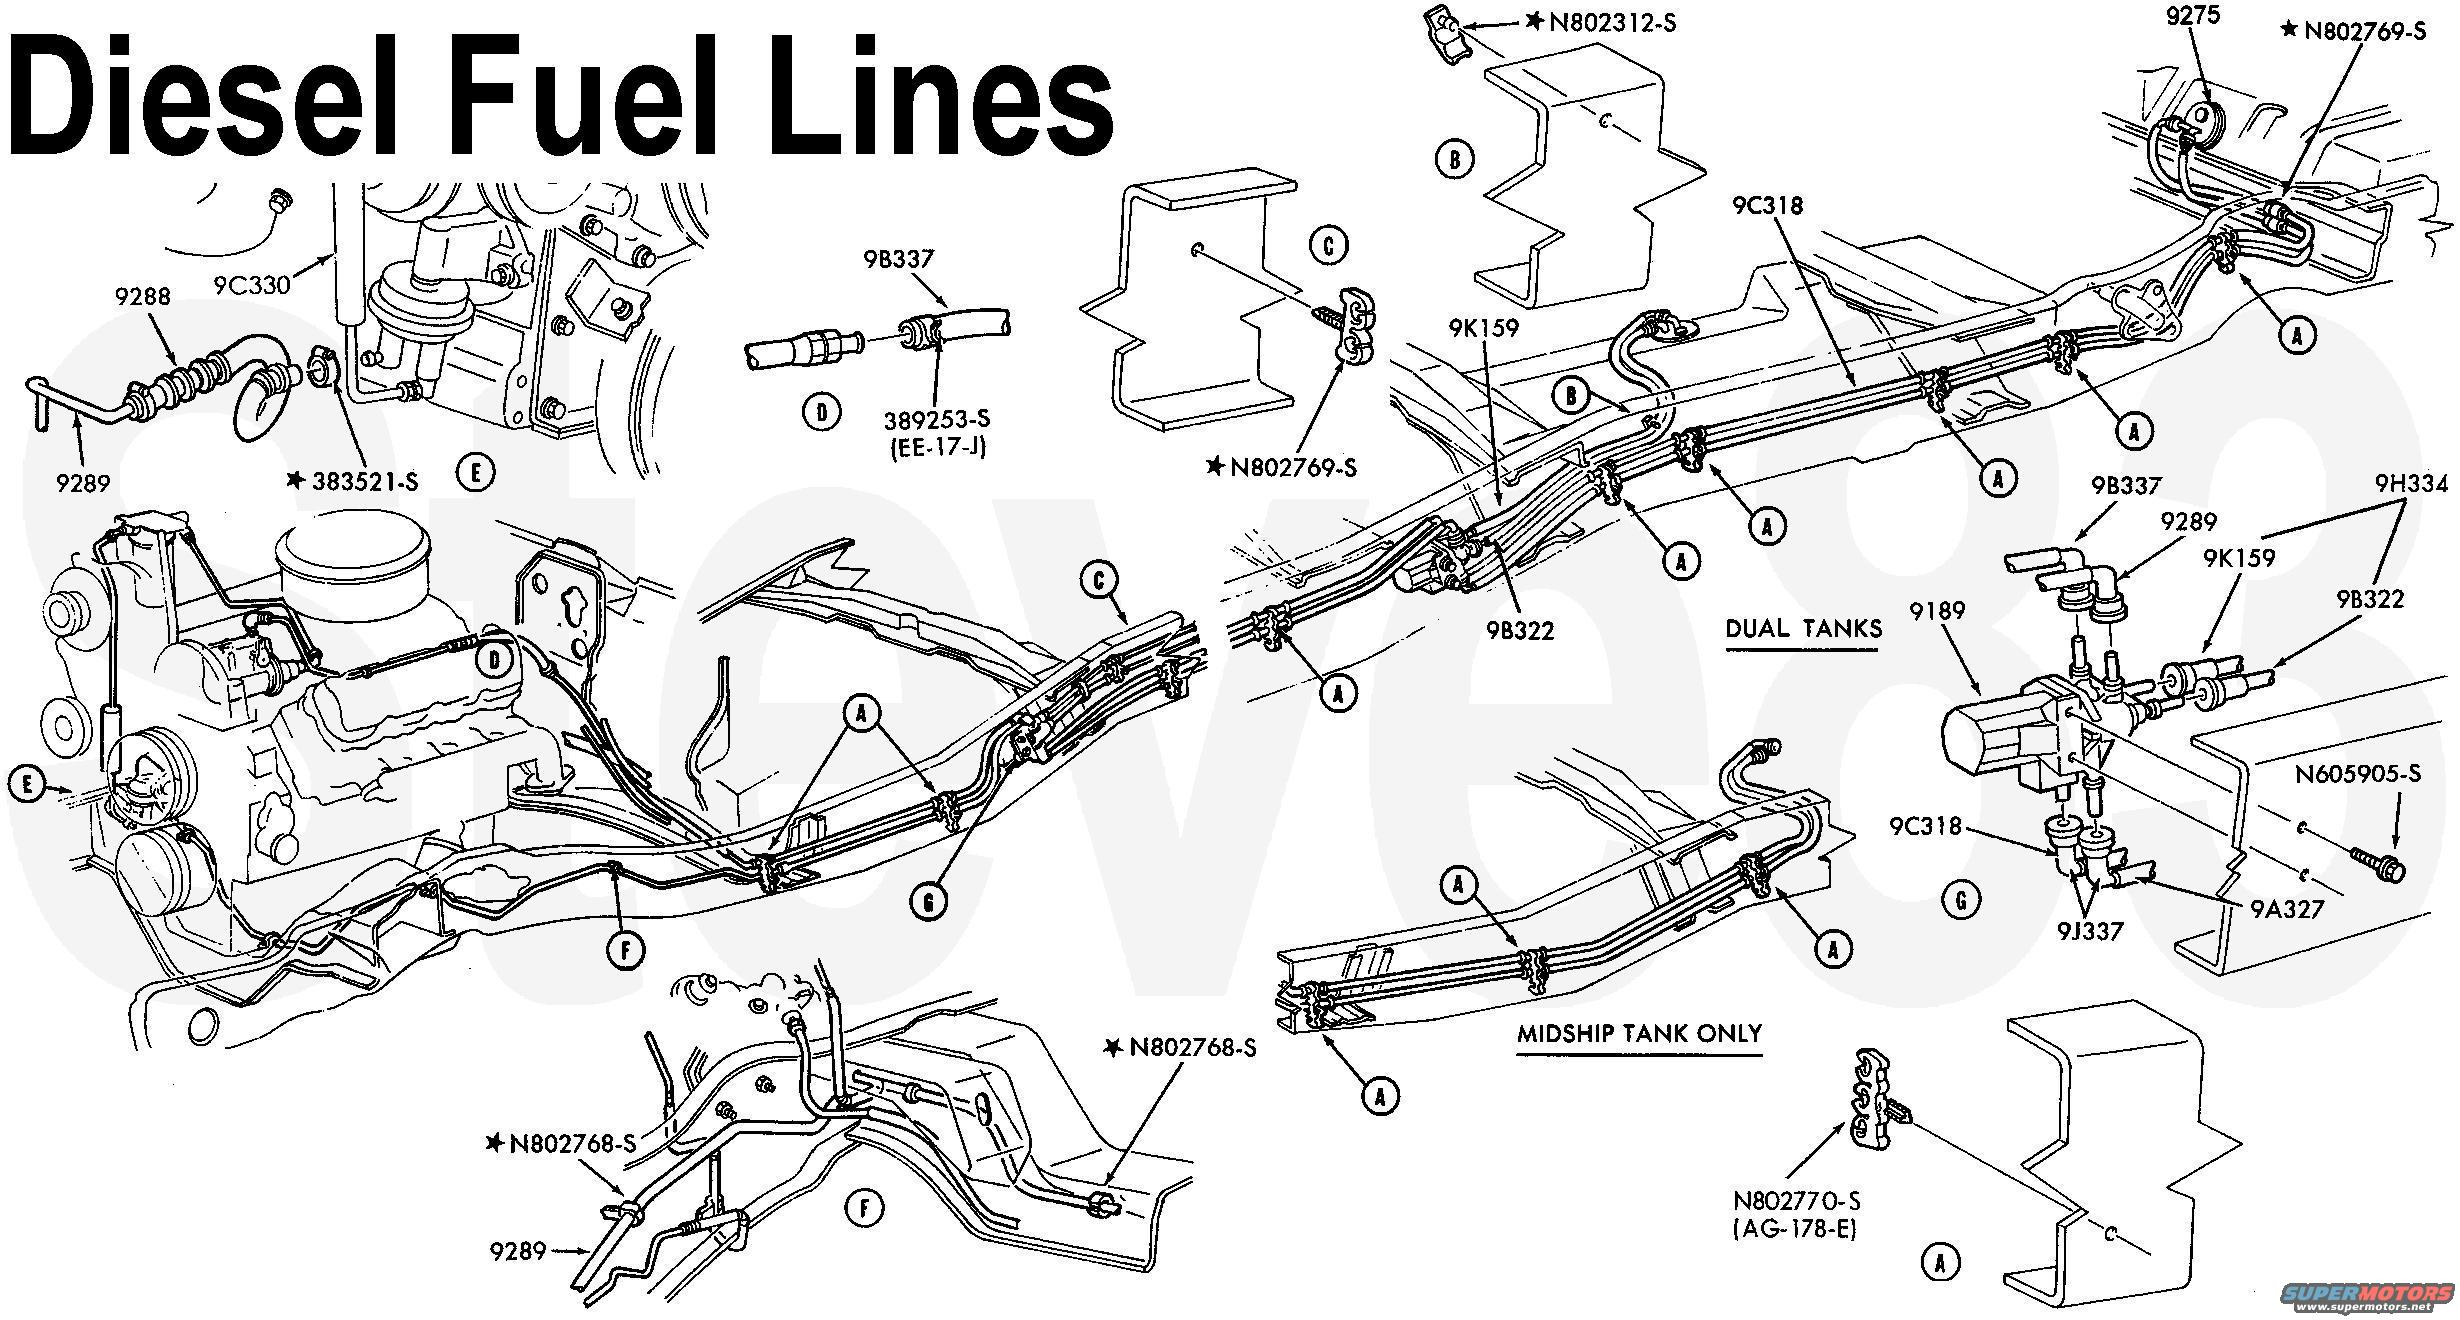 1996 Ford F 250 7 3l Engine Diagram. Ford. Auto Wiring Diagram